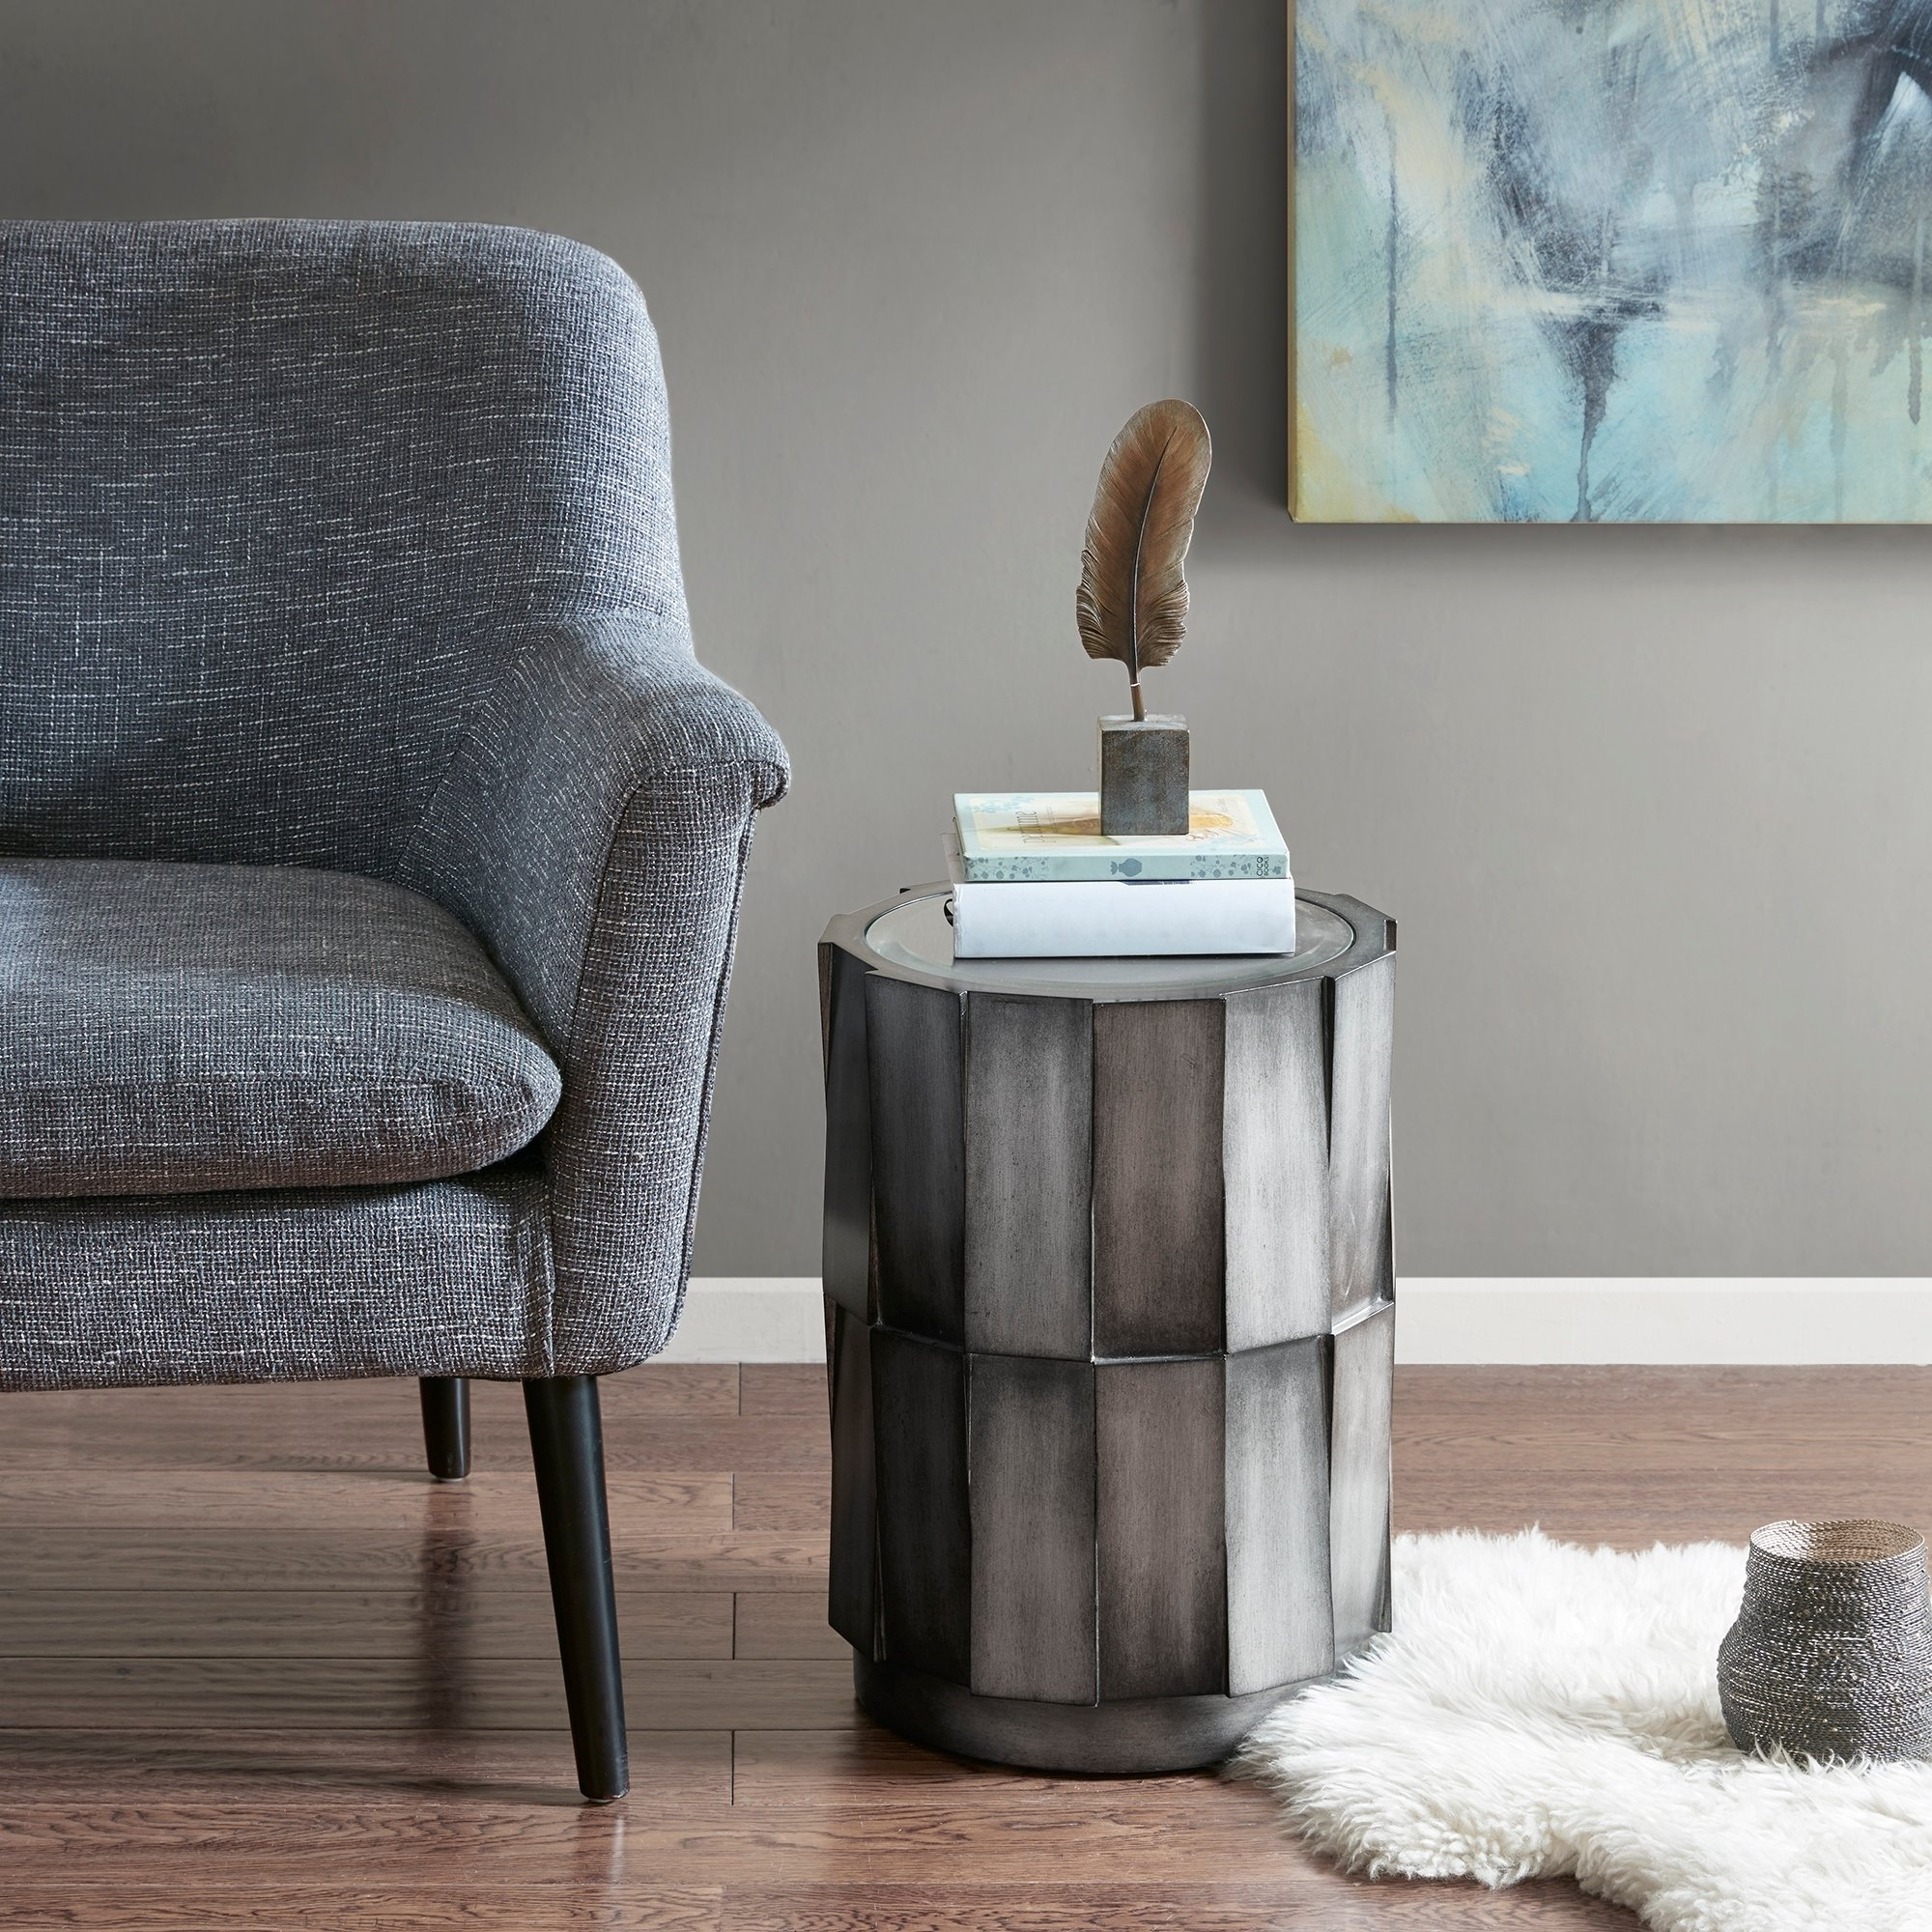 madison park zuma grey accent table free shipping vanora today mid century modern rugs storage cabinets wood piece patio set antique oval side small metal drum couch covers target